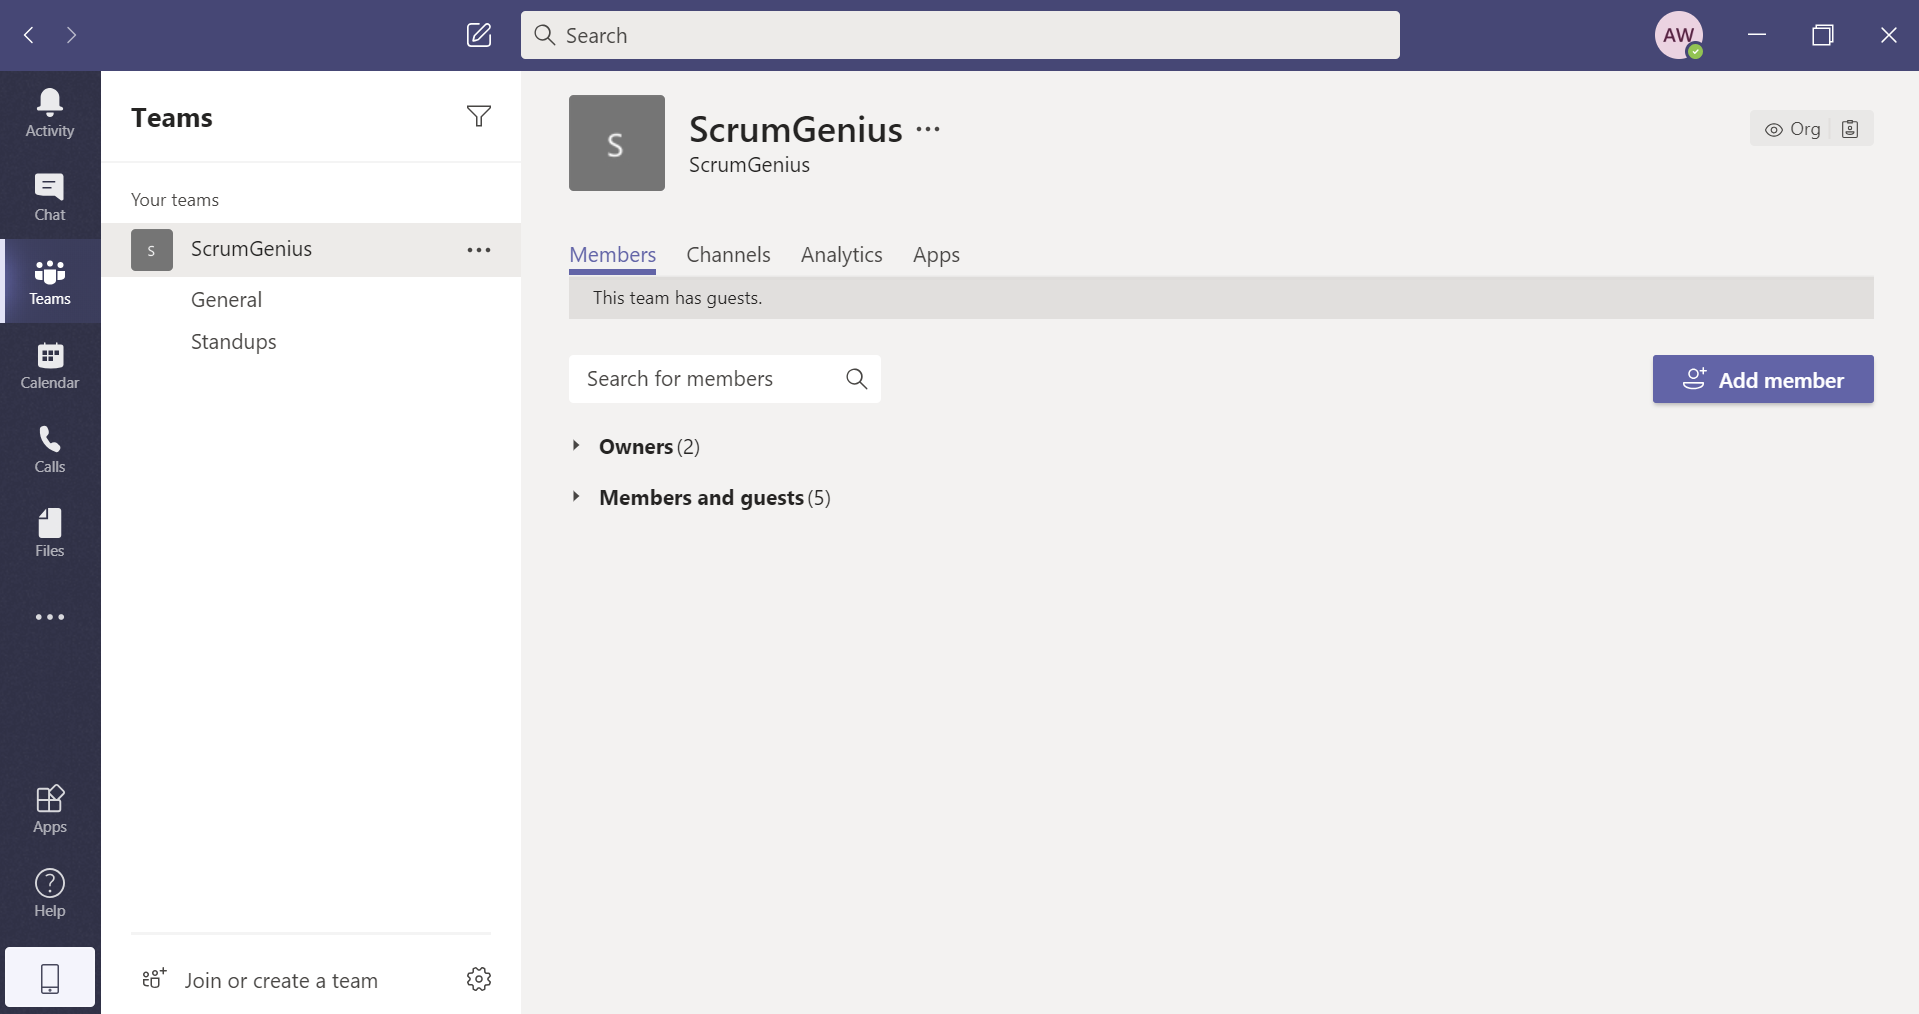 How to Use Microsoft Teams Effectively 2: Setting Up Your Account - Join or Create Team